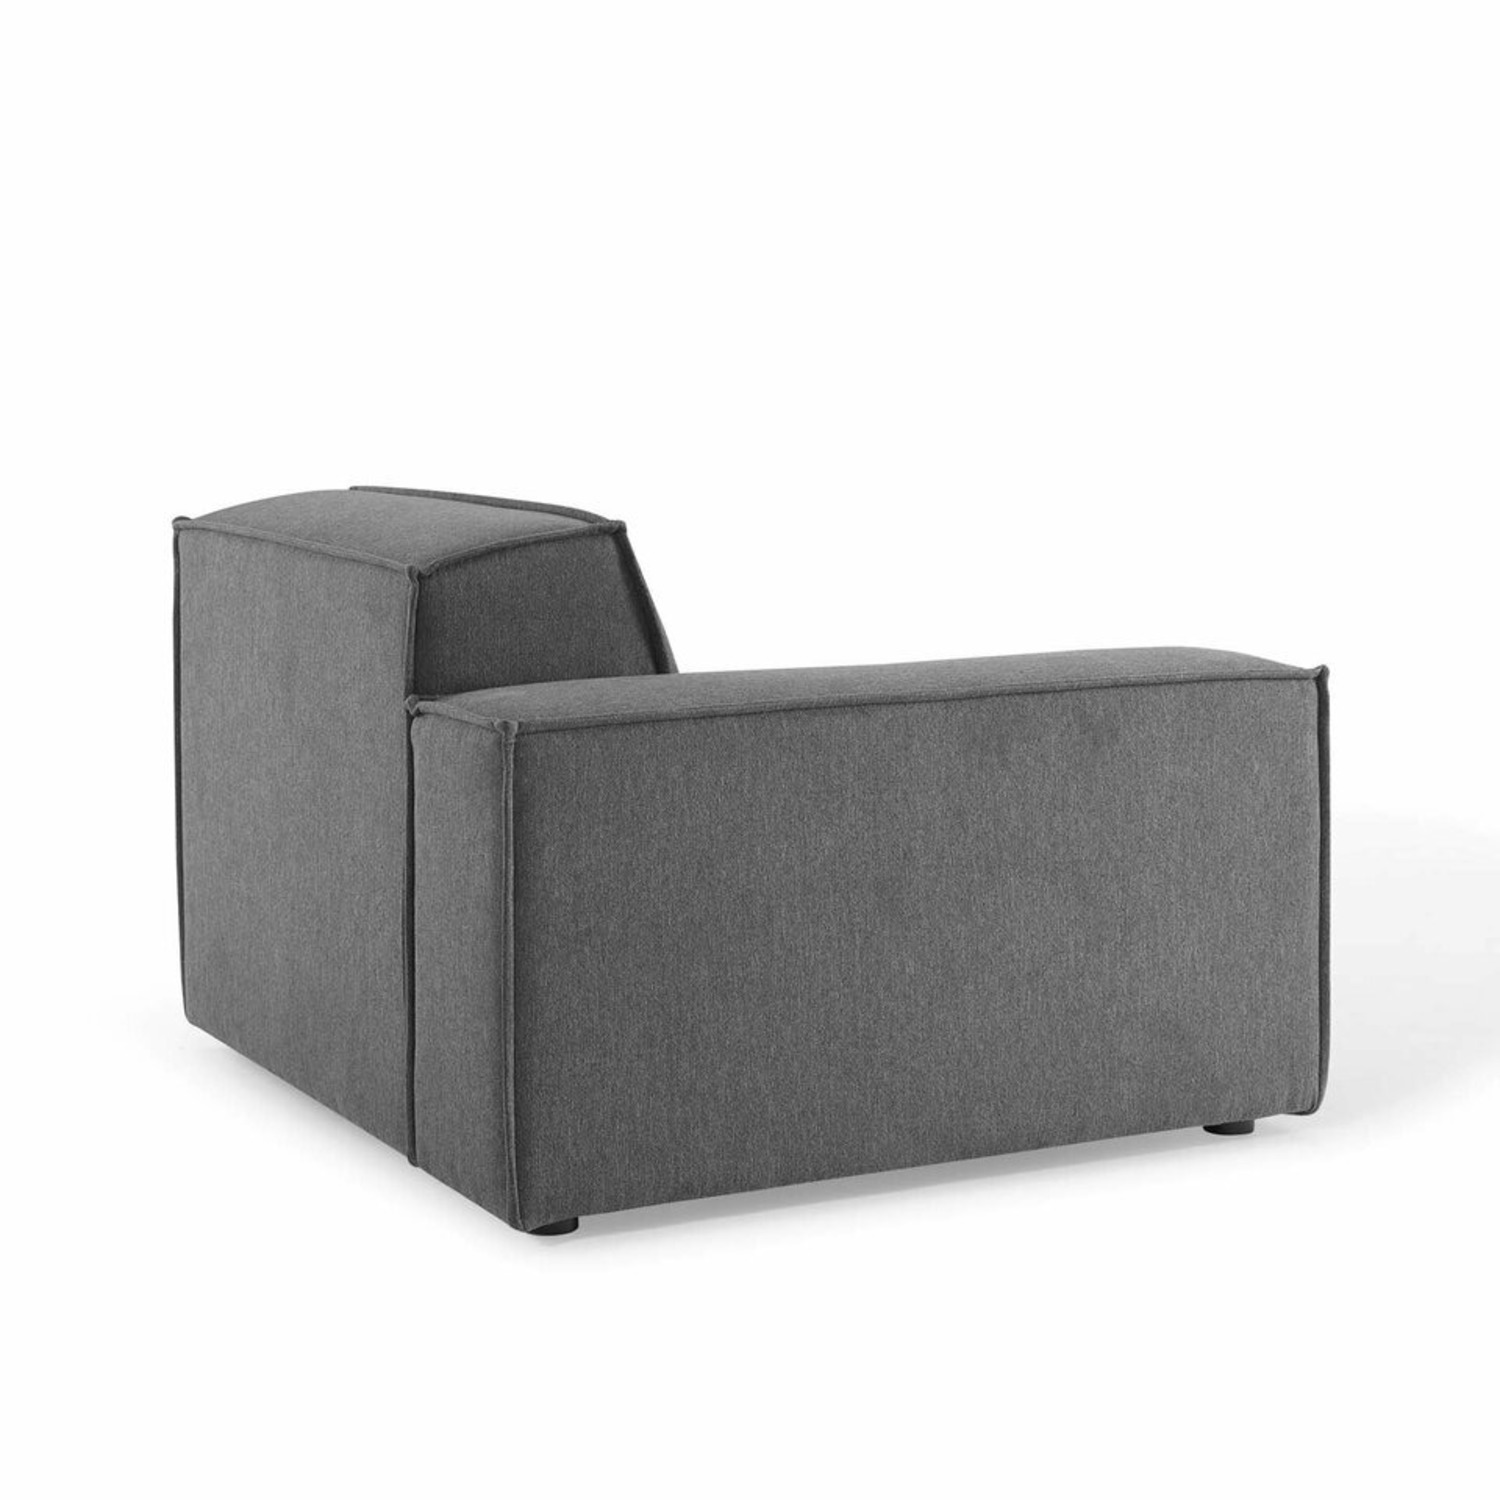 3-Piece Sectional Sofa In Charcoal Upholstery - image-7